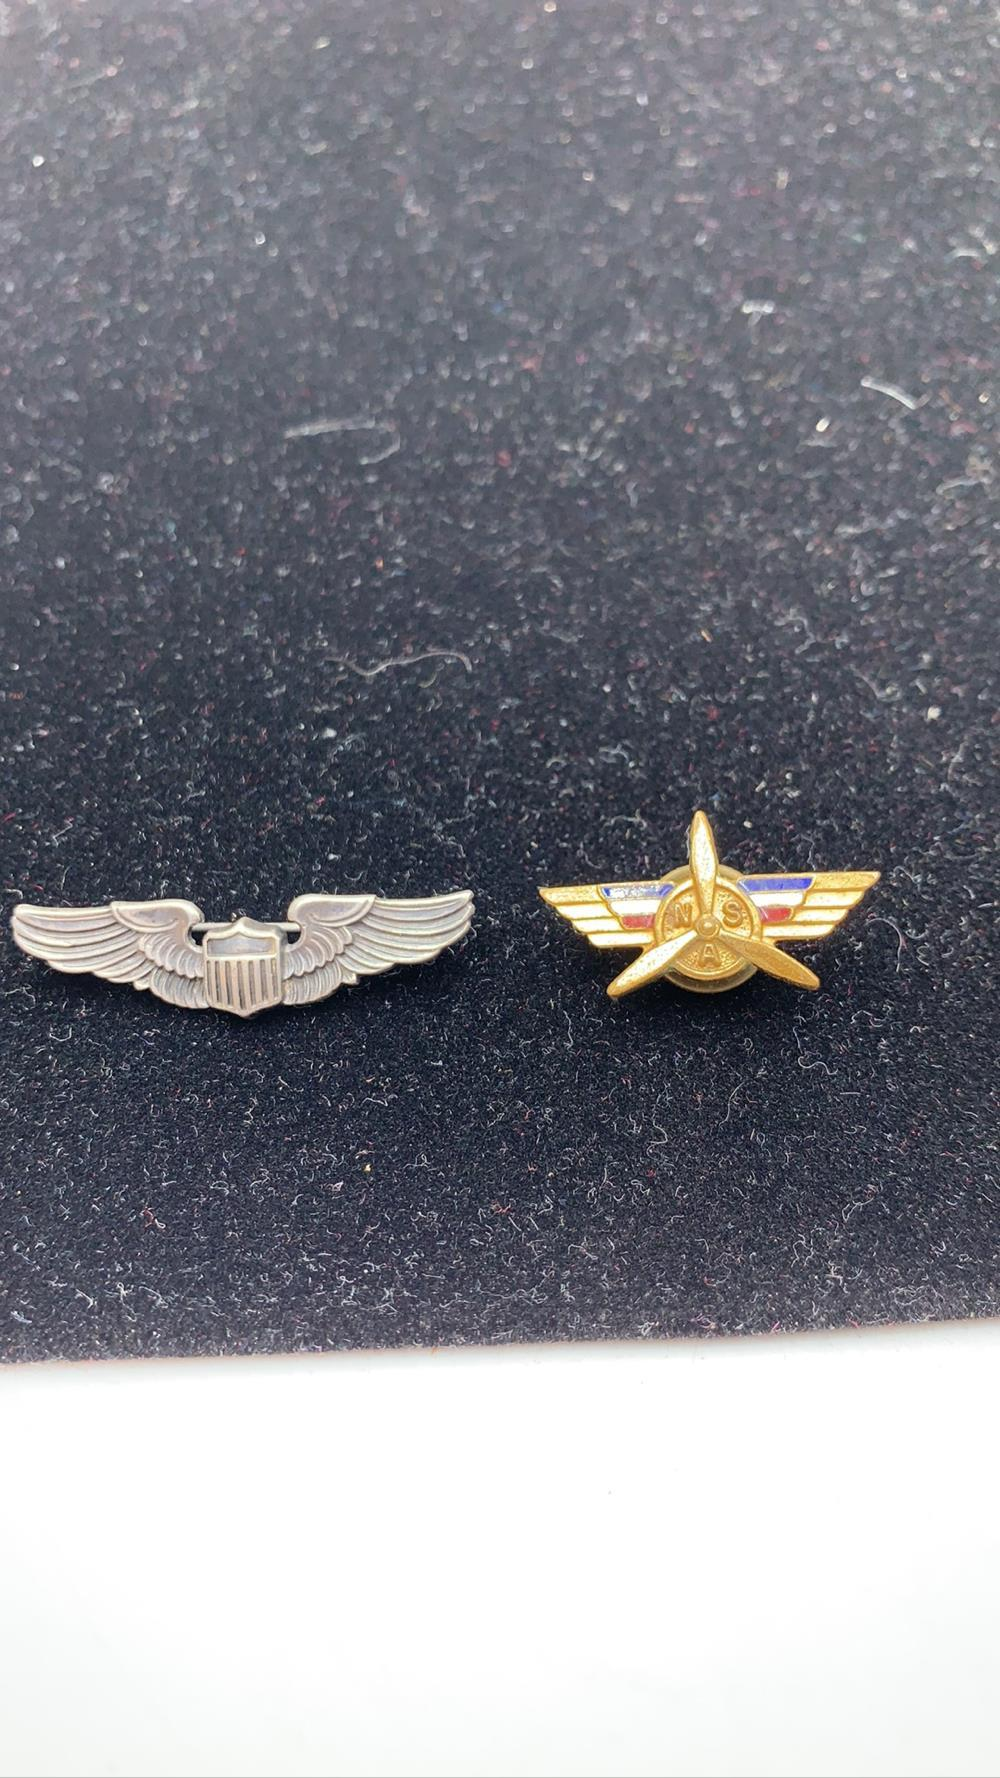 Two Vintage Military Pins